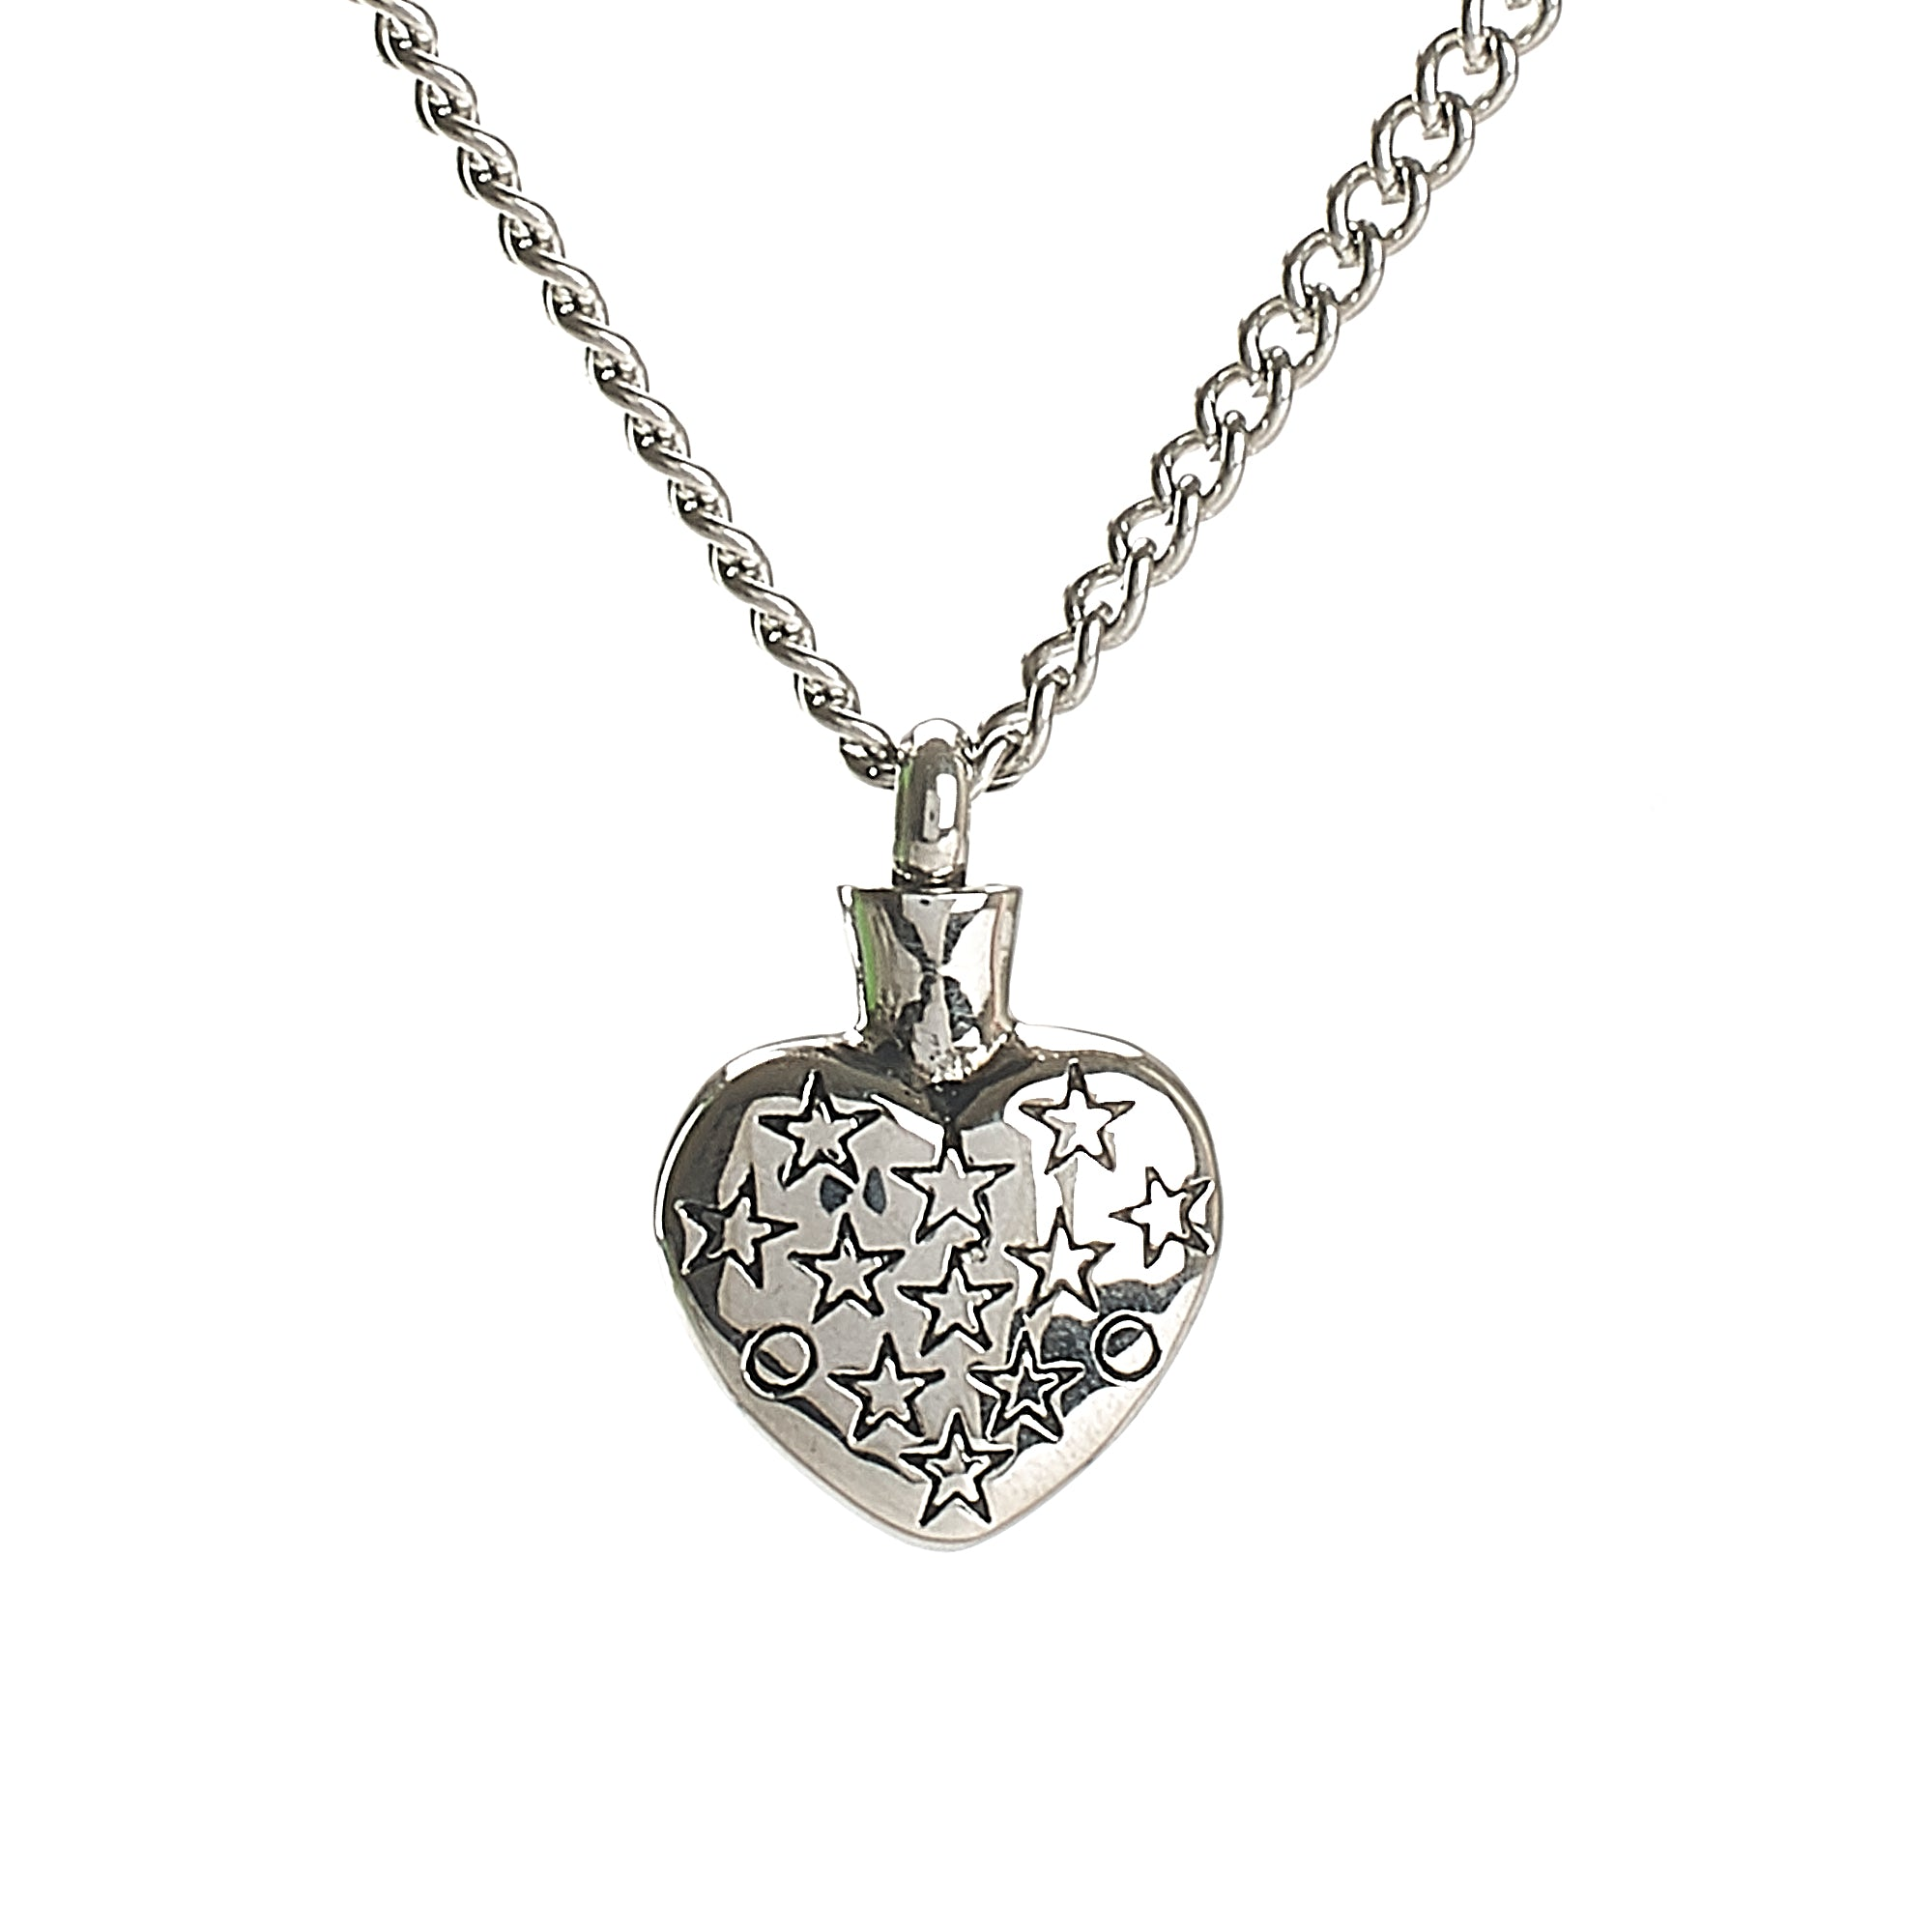 Cremation Pendant - Stars within a Heart - Silver